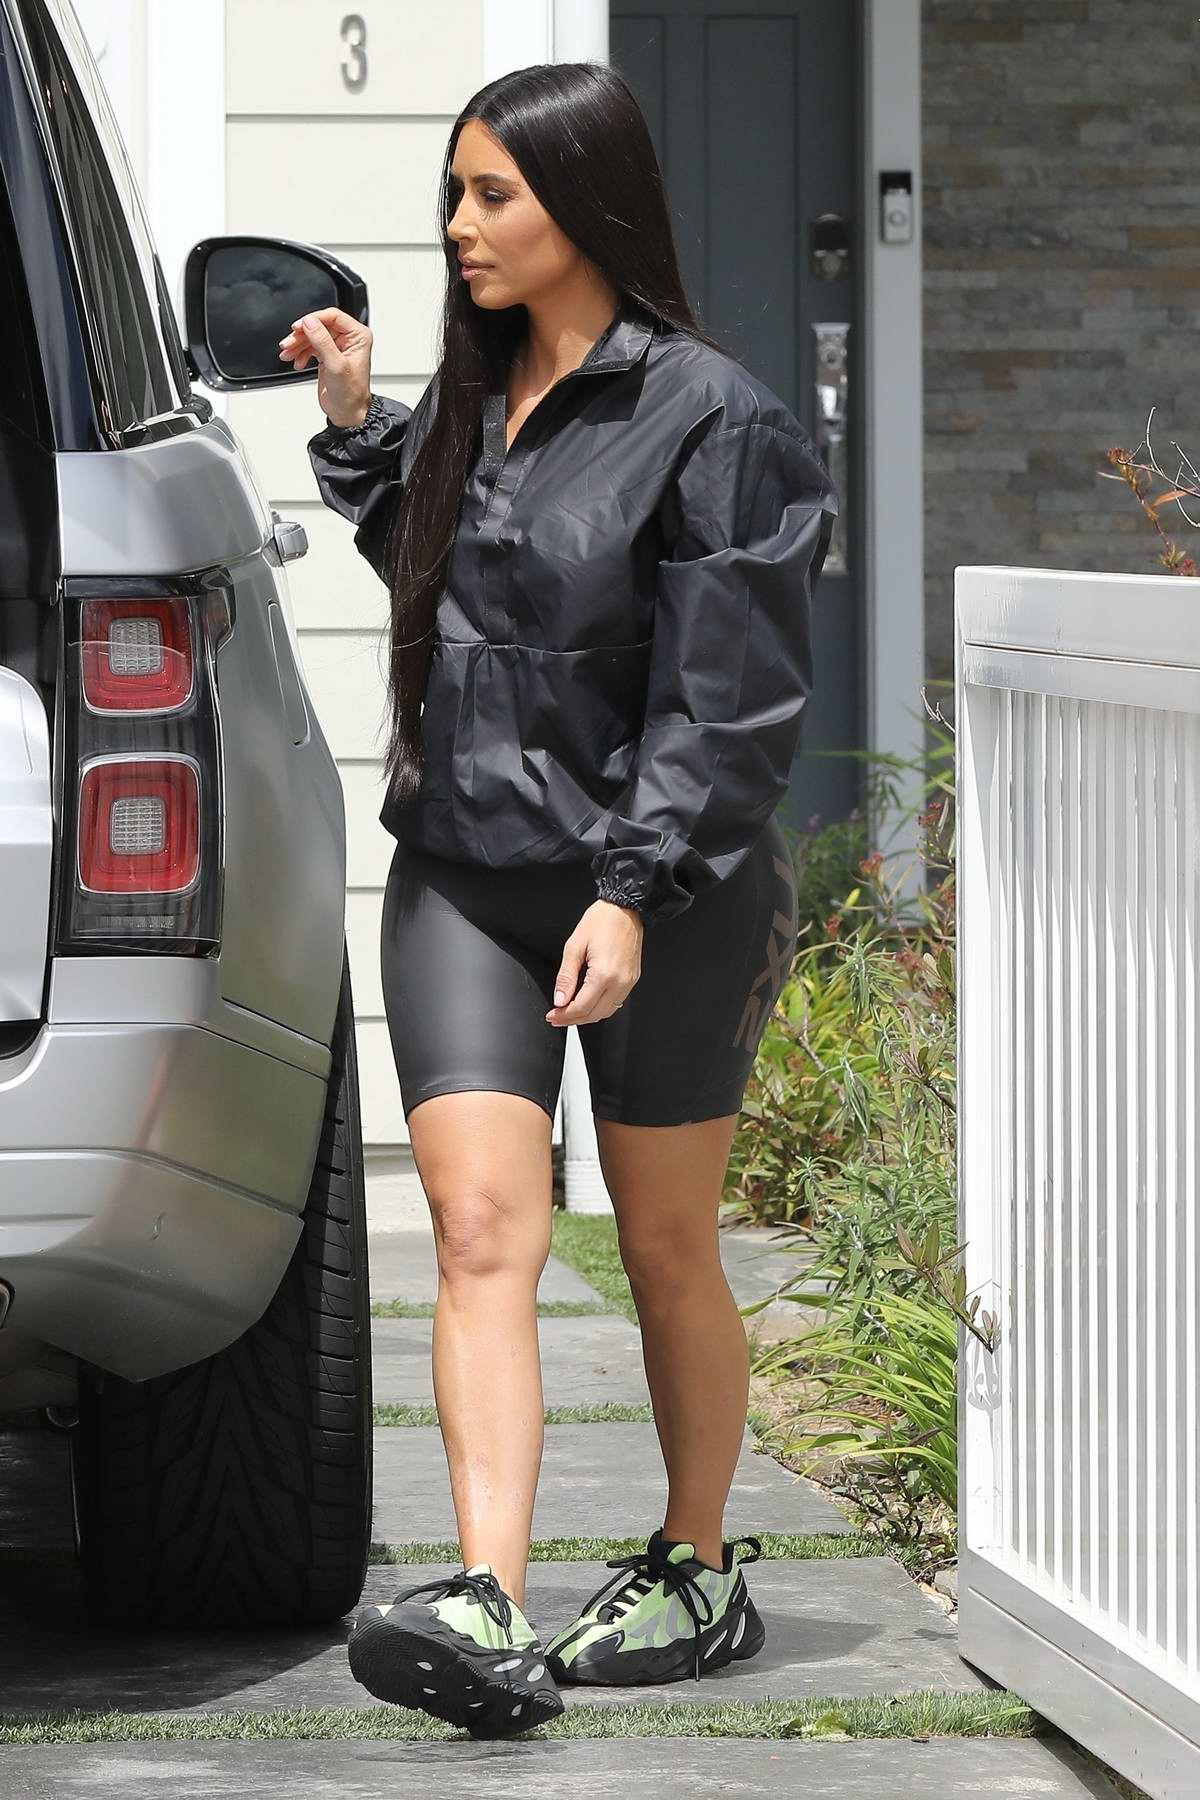 Kim Kardashian takes daughter North West to meet JoJo Siwa for video collaboration in Los Angeles